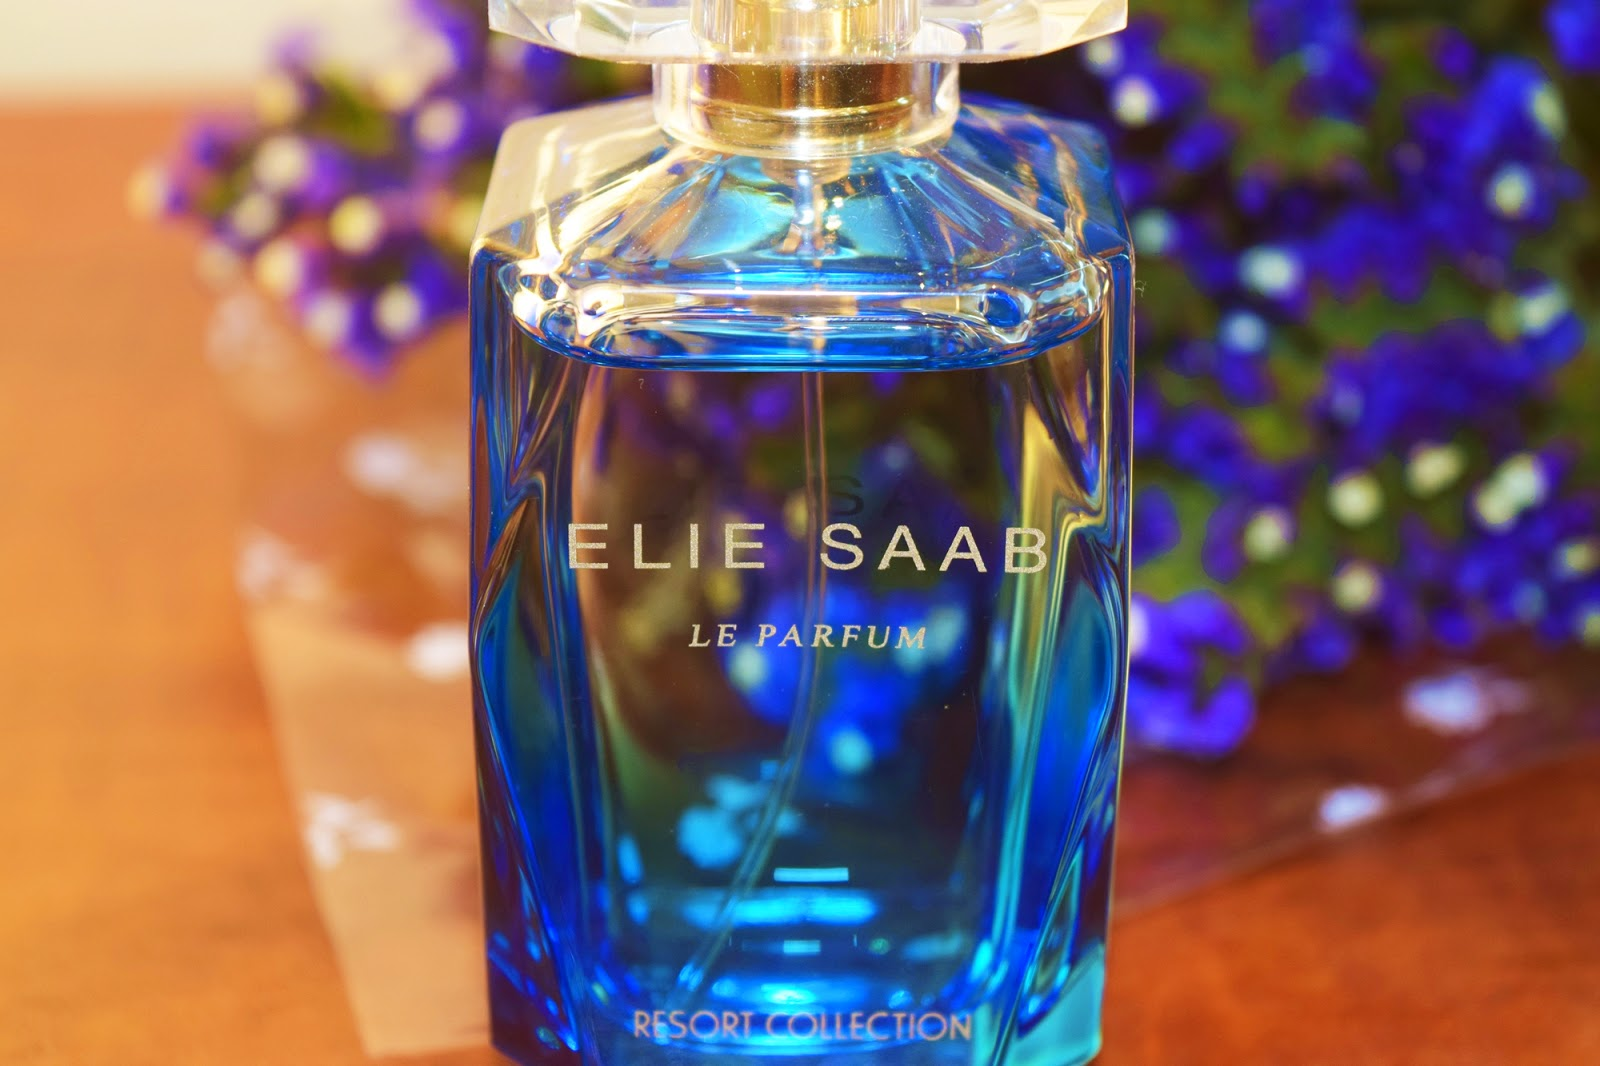 elie saab le parfum resort collection 2015 pretty gloss. Black Bedroom Furniture Sets. Home Design Ideas